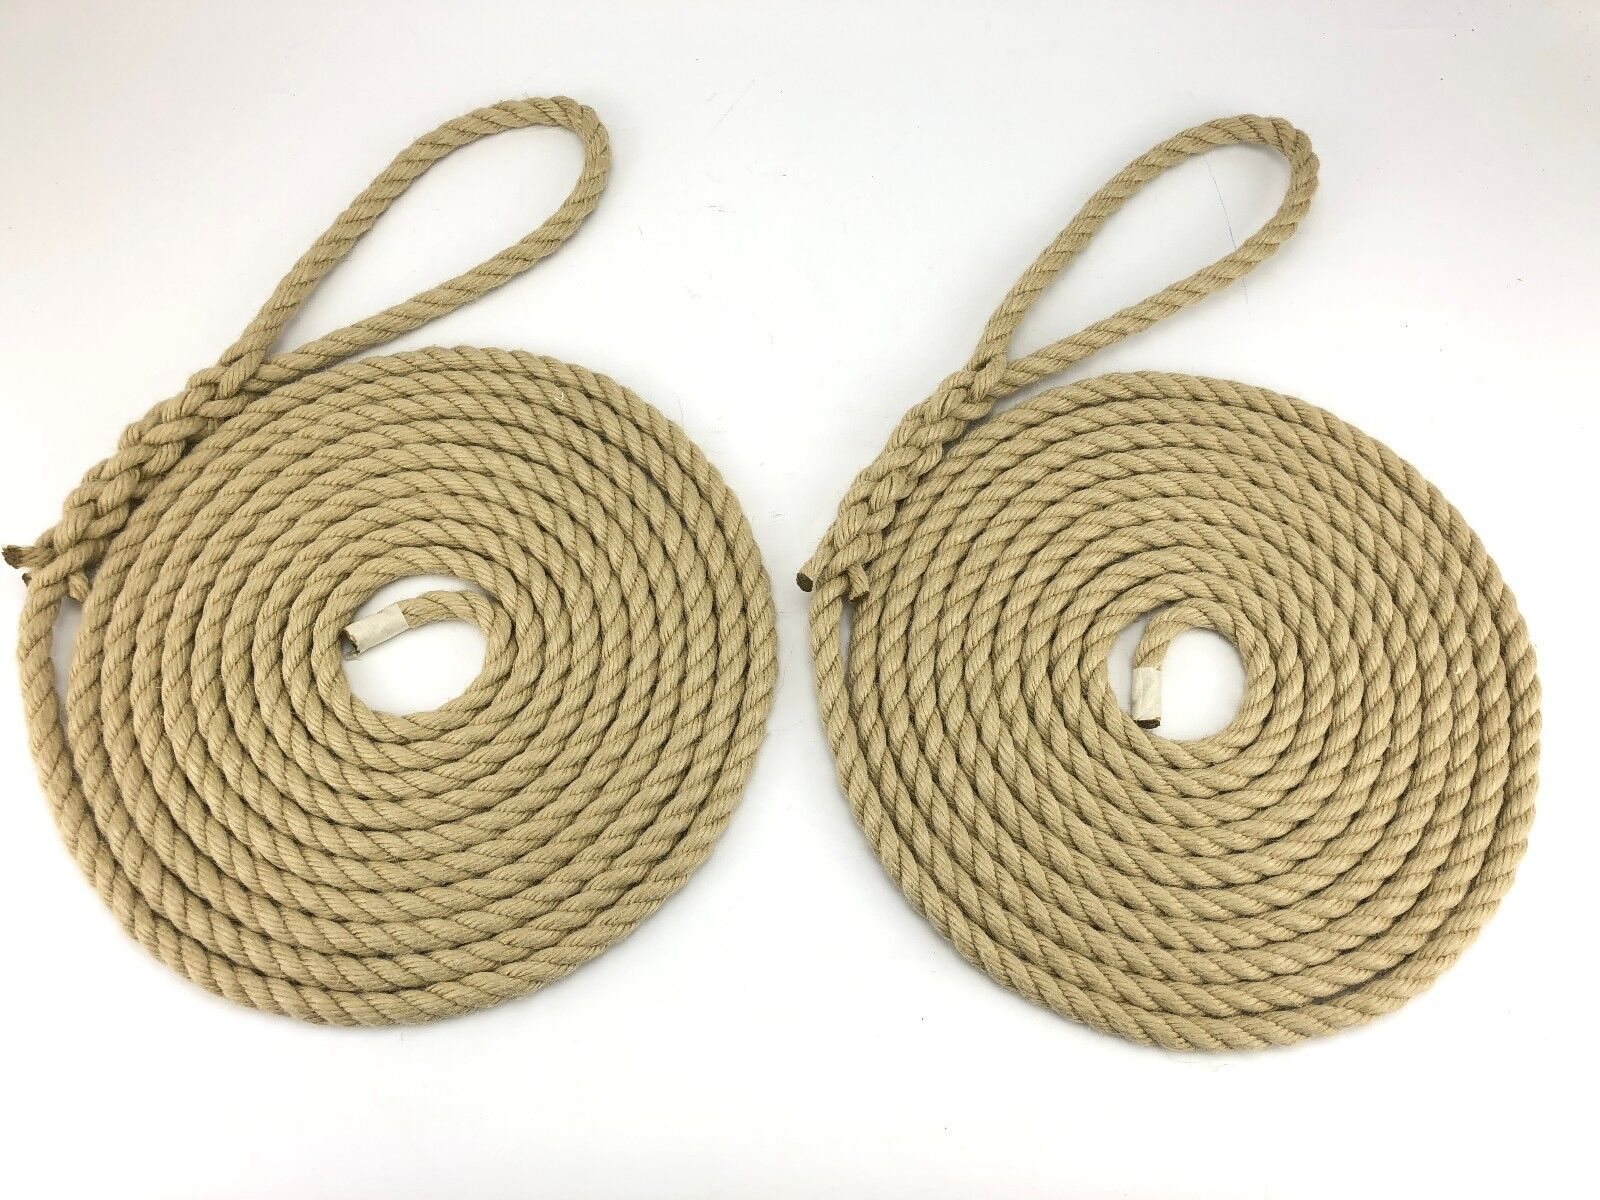 Synthetic Polyhemp Mooring Ropes, Warps, Boat Lines, Yachts, Canal, 10mm-18mm